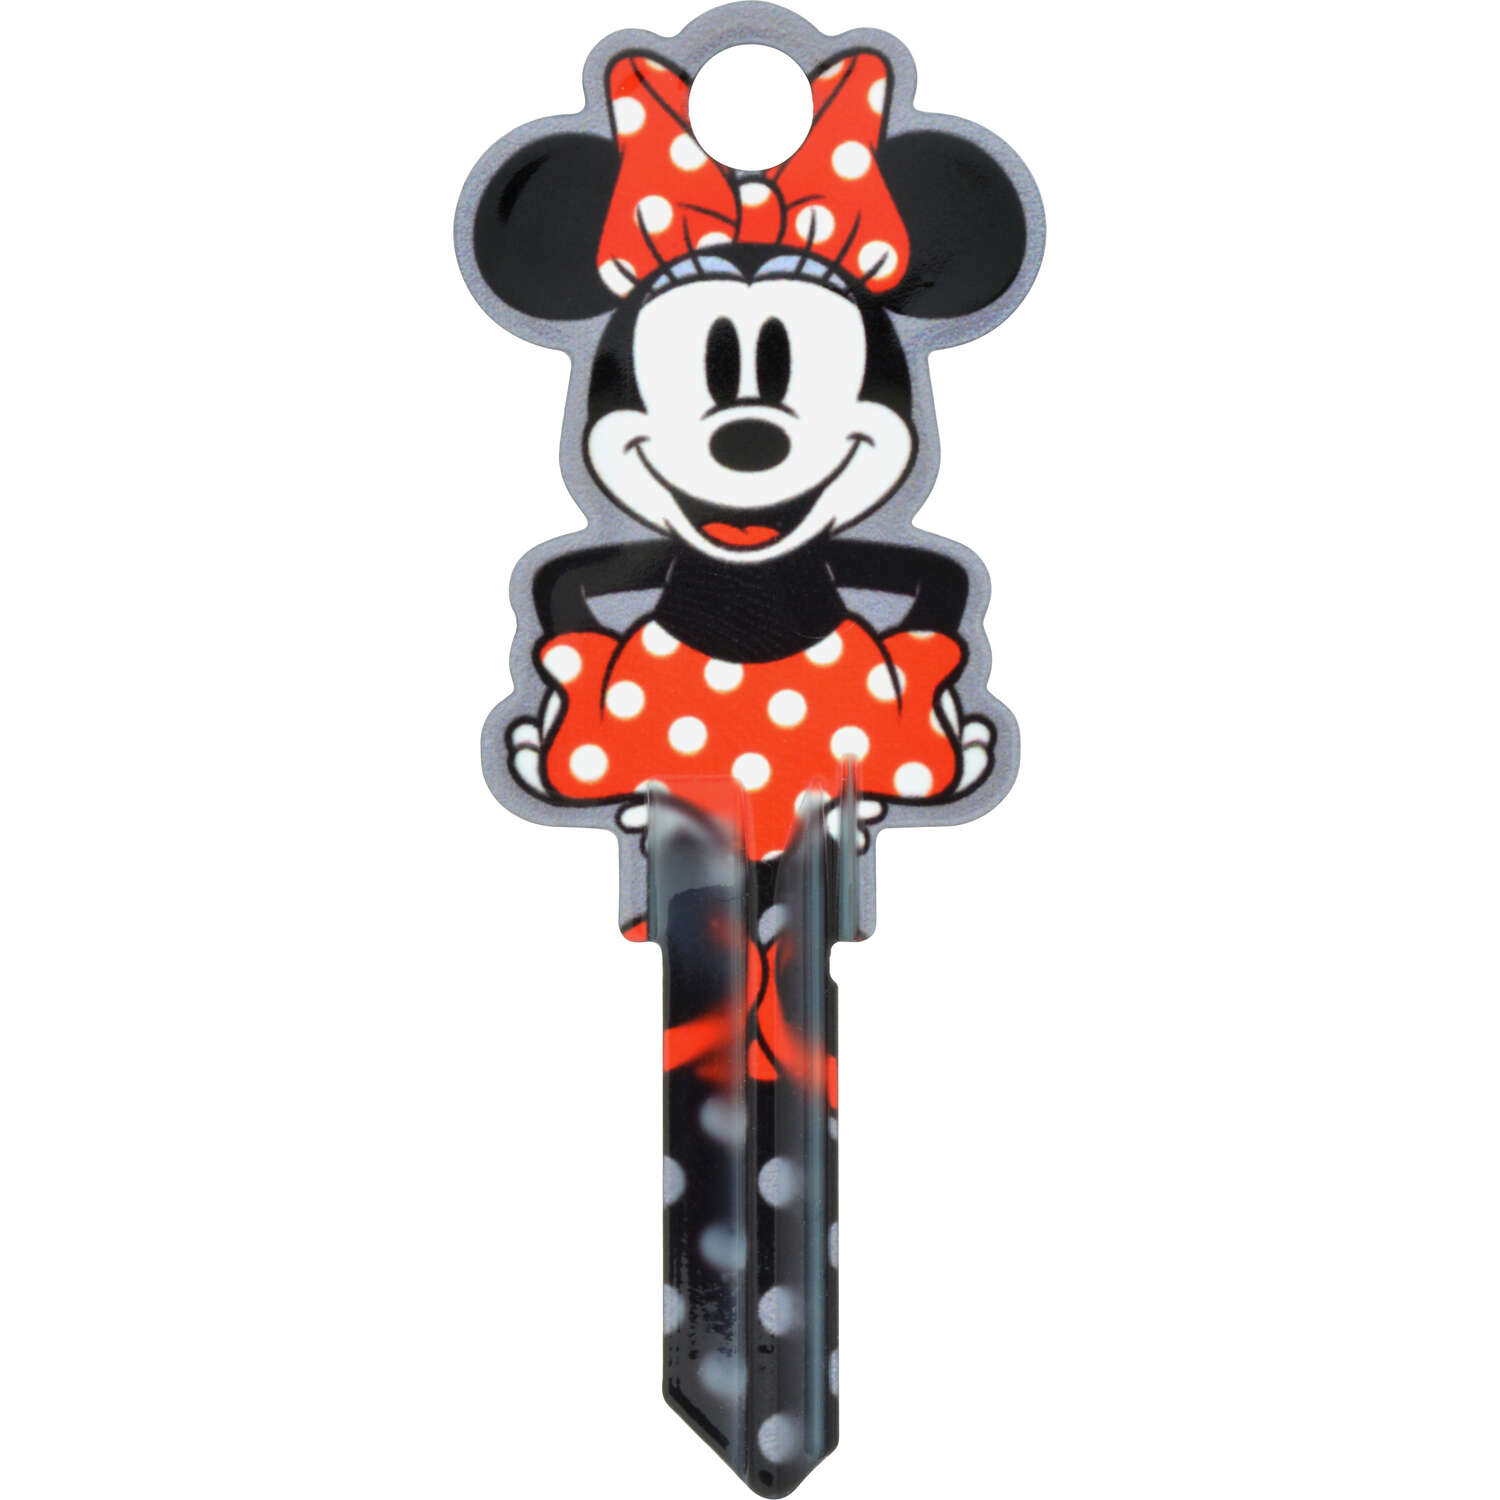 Hillman  Disney  Minnie  House/Padlock  Universal Key Blank  Double sided